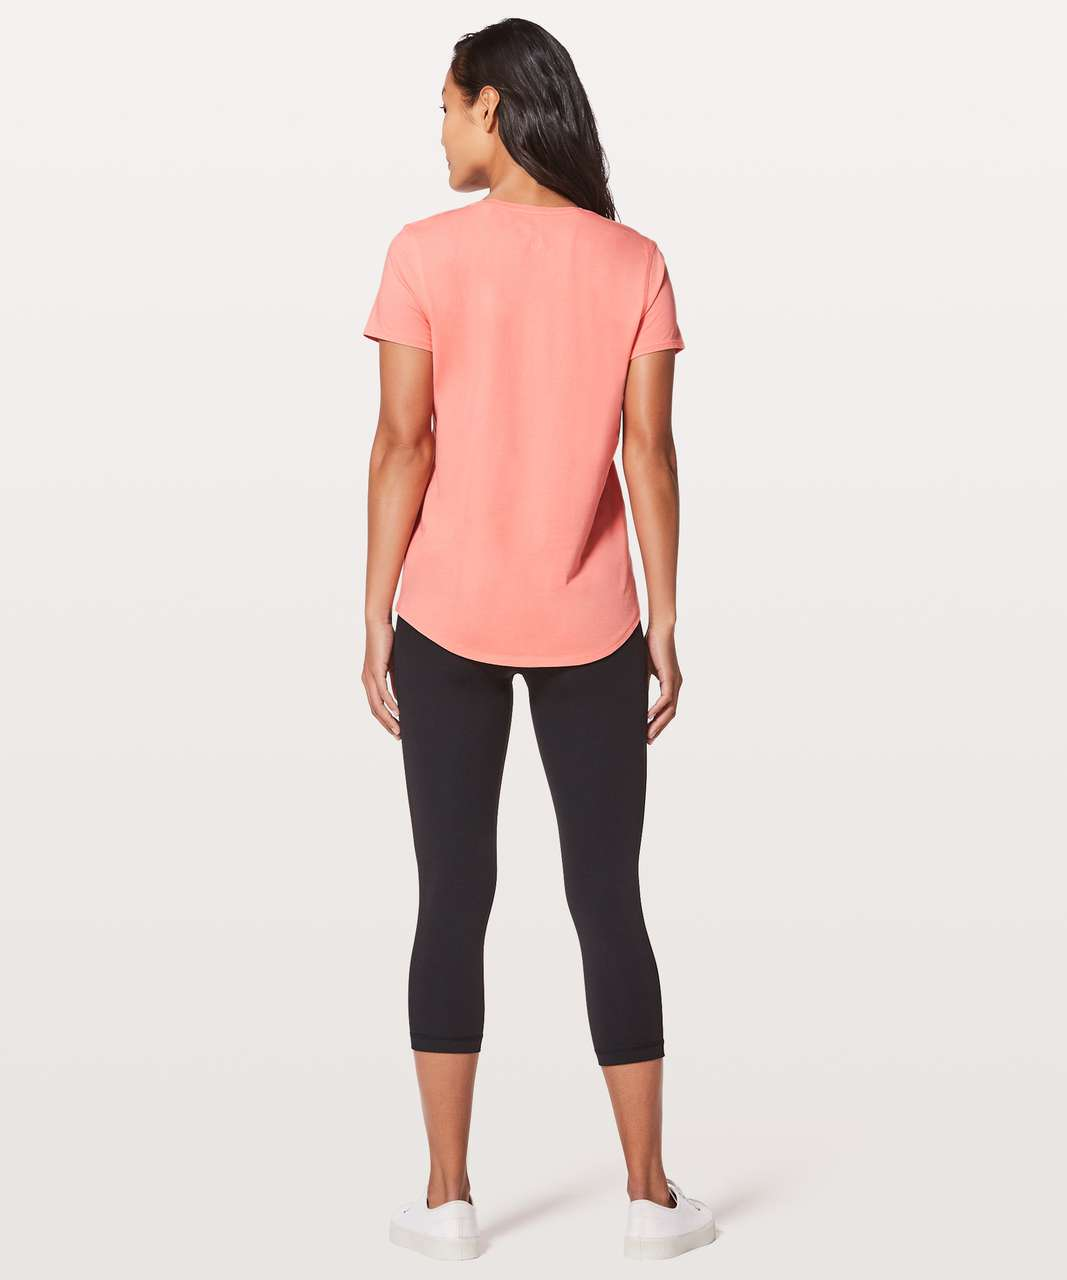 Lululemon Love Crew III - Light Coral